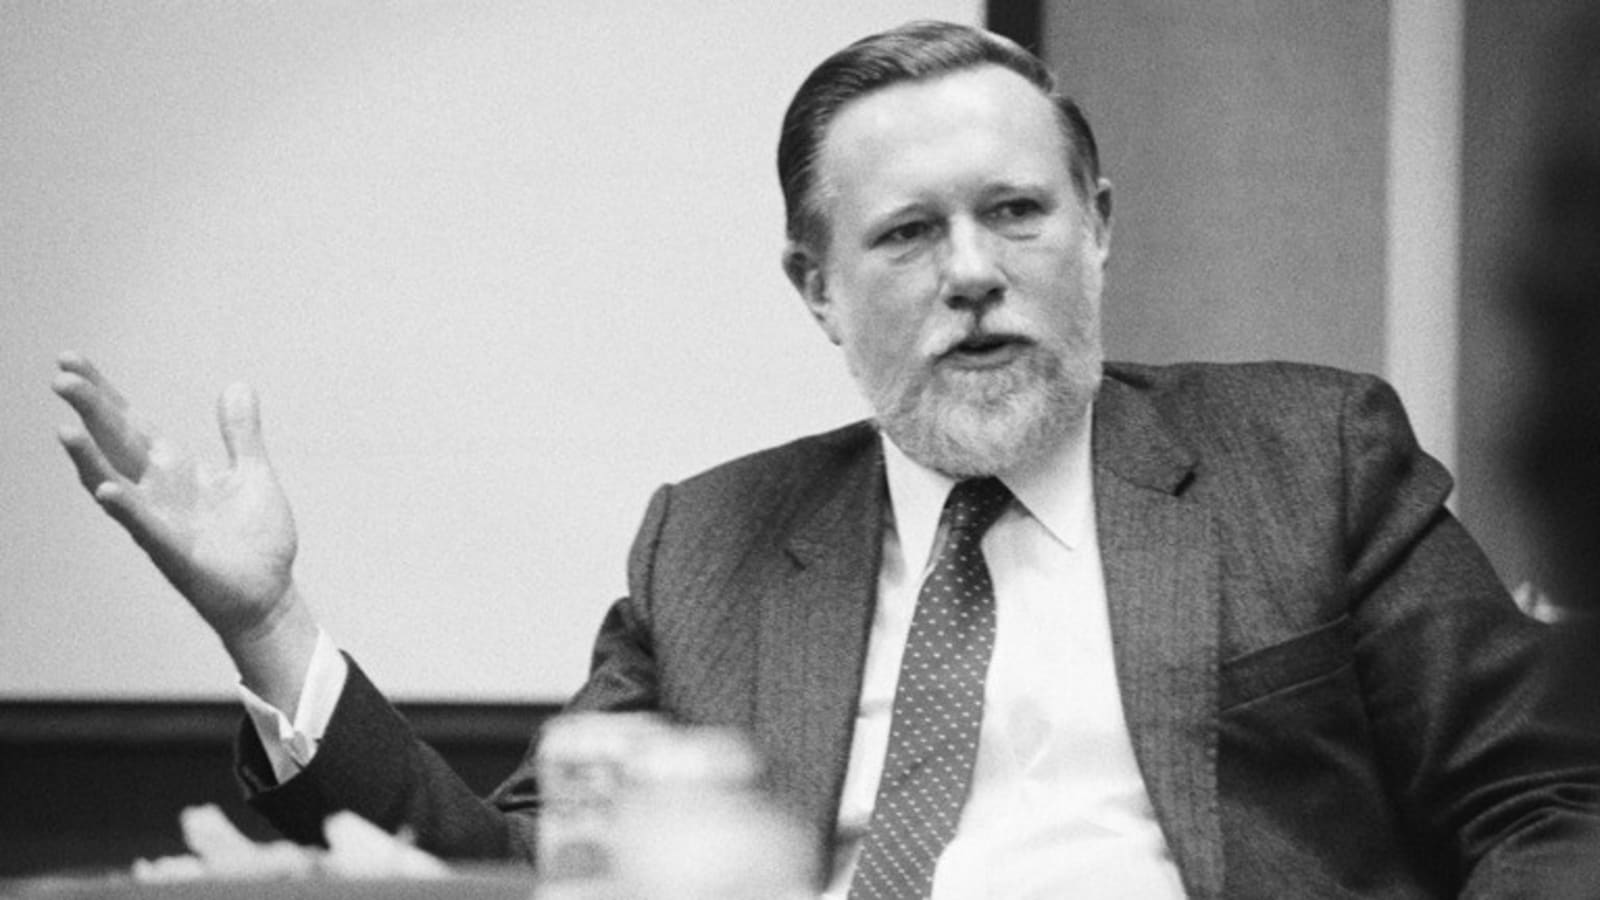 Adobe founder, Charles 'Chuck' Geschke, has died at 81